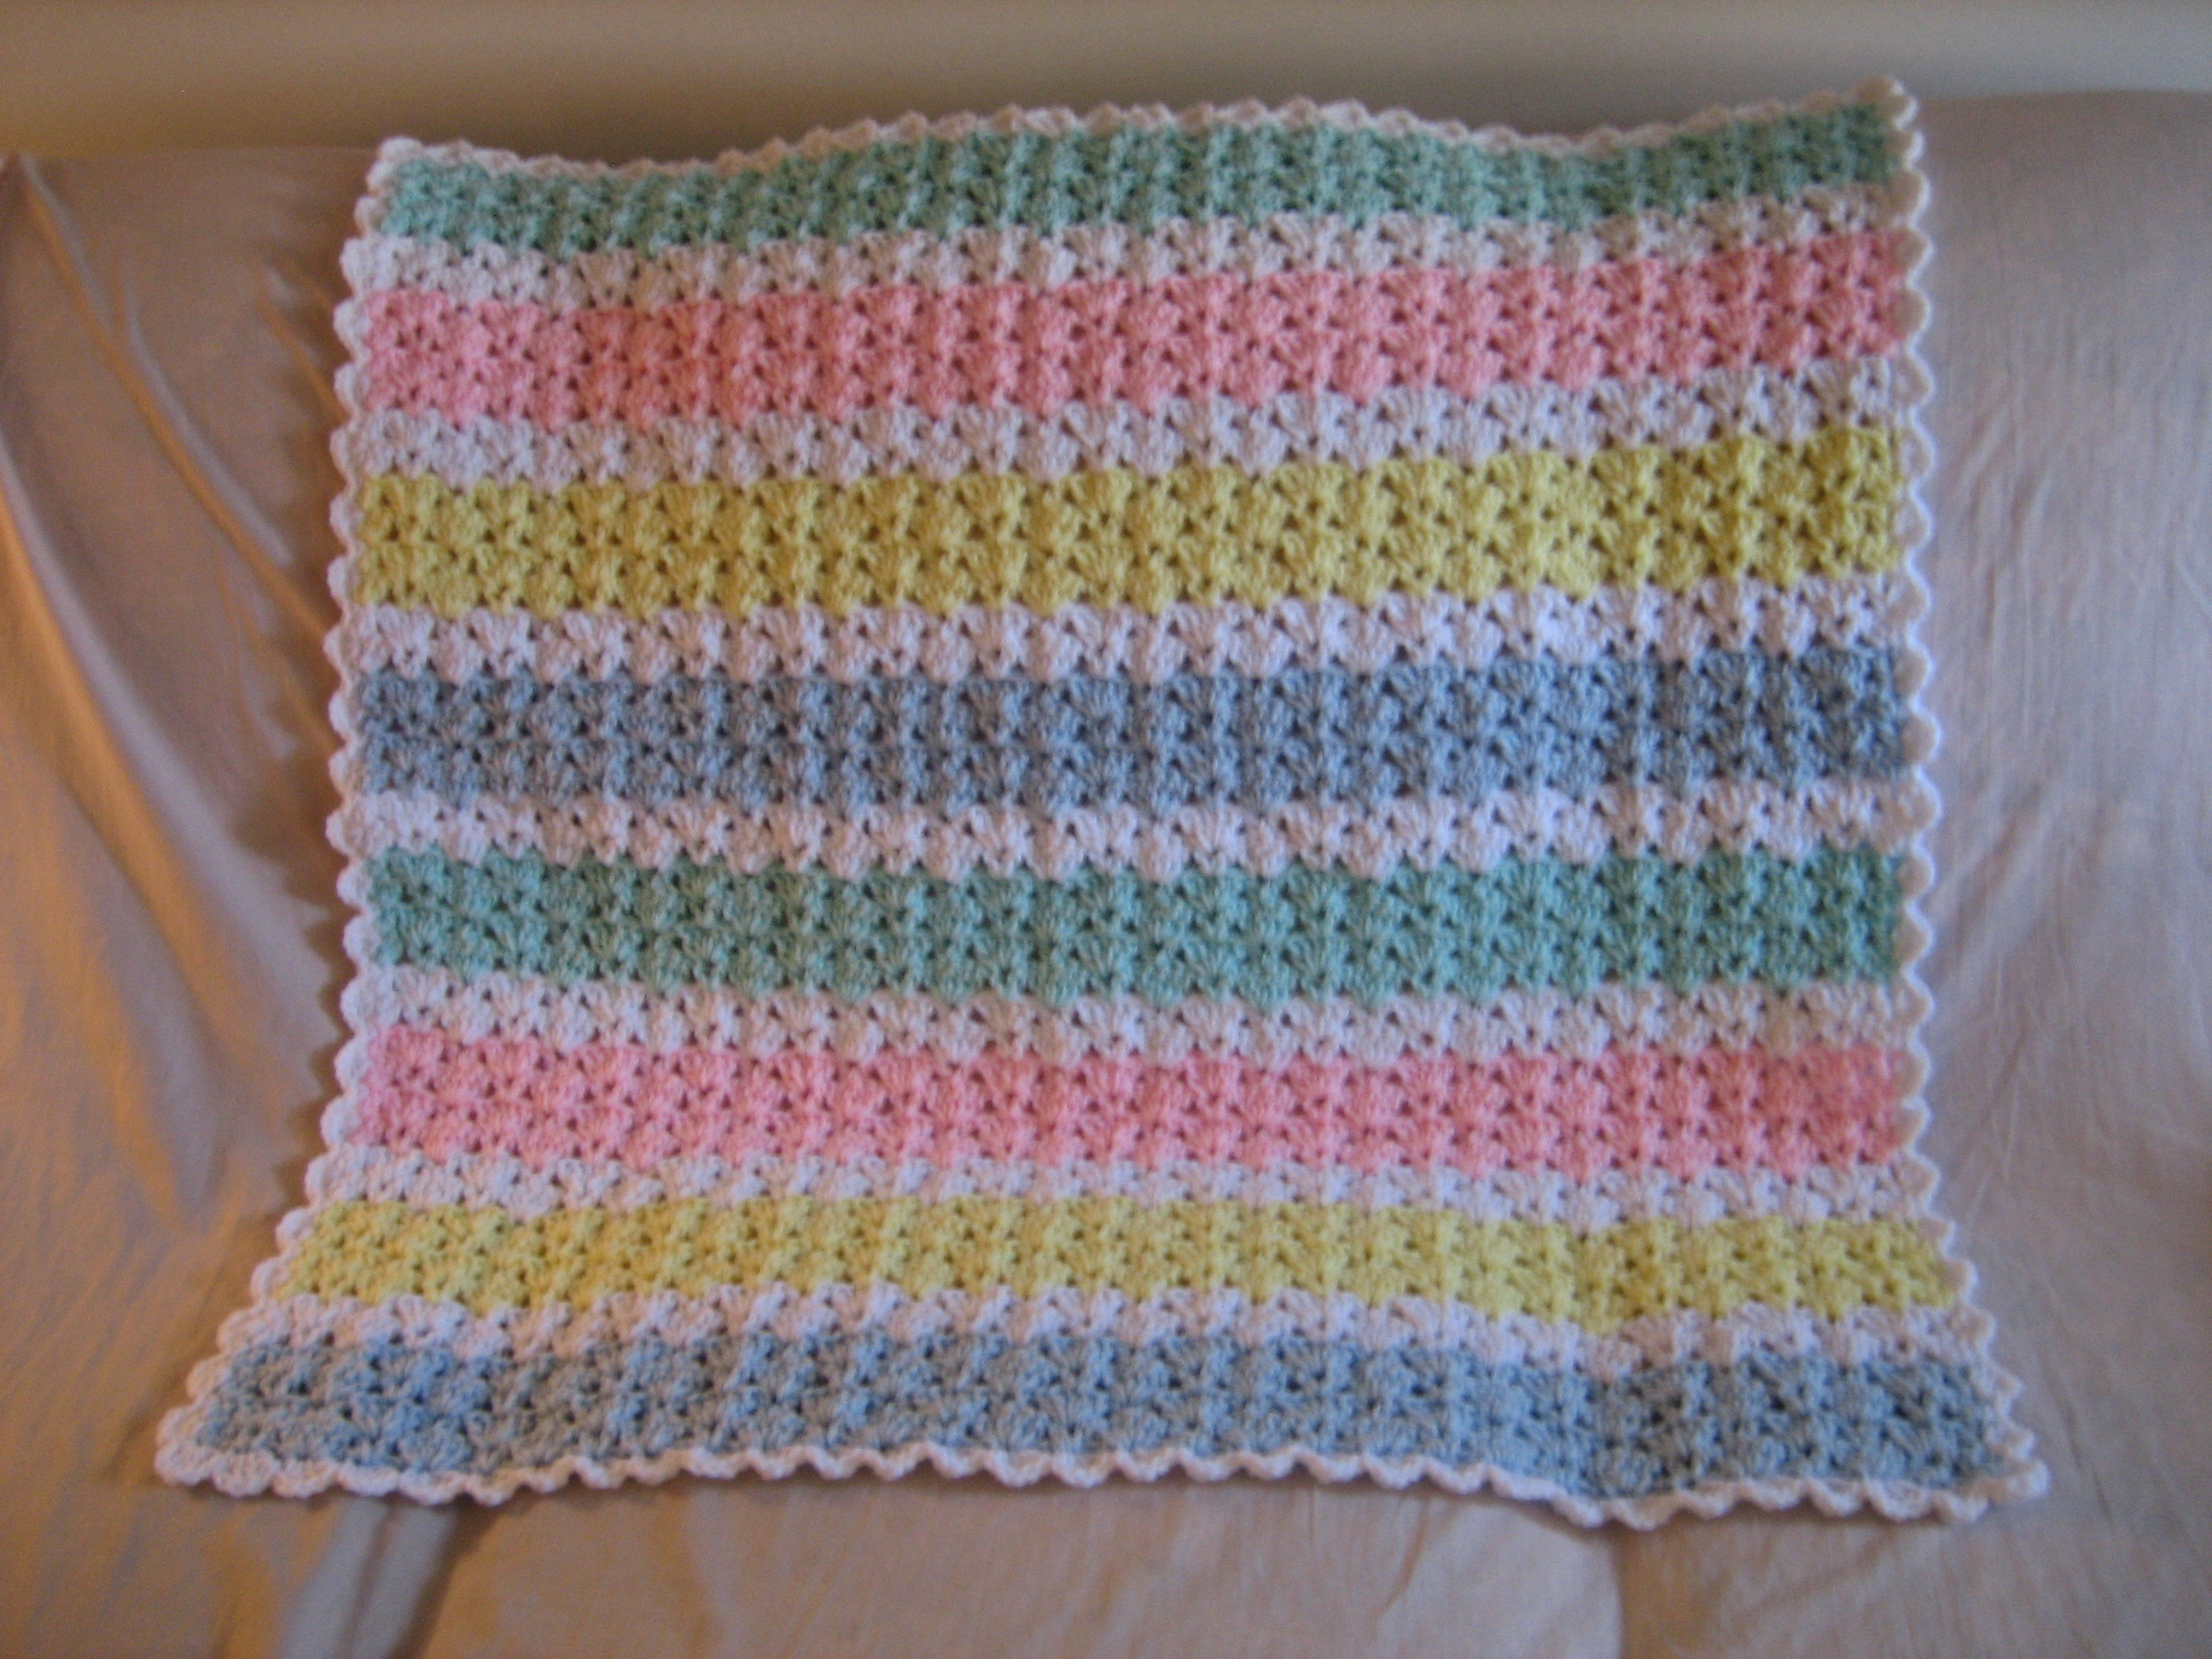 Crochet Throws Patterns Lovely Baby Blanket Crochet Patterns for Beginners Of Wonderful 44 Images Crochet Throws Patterns